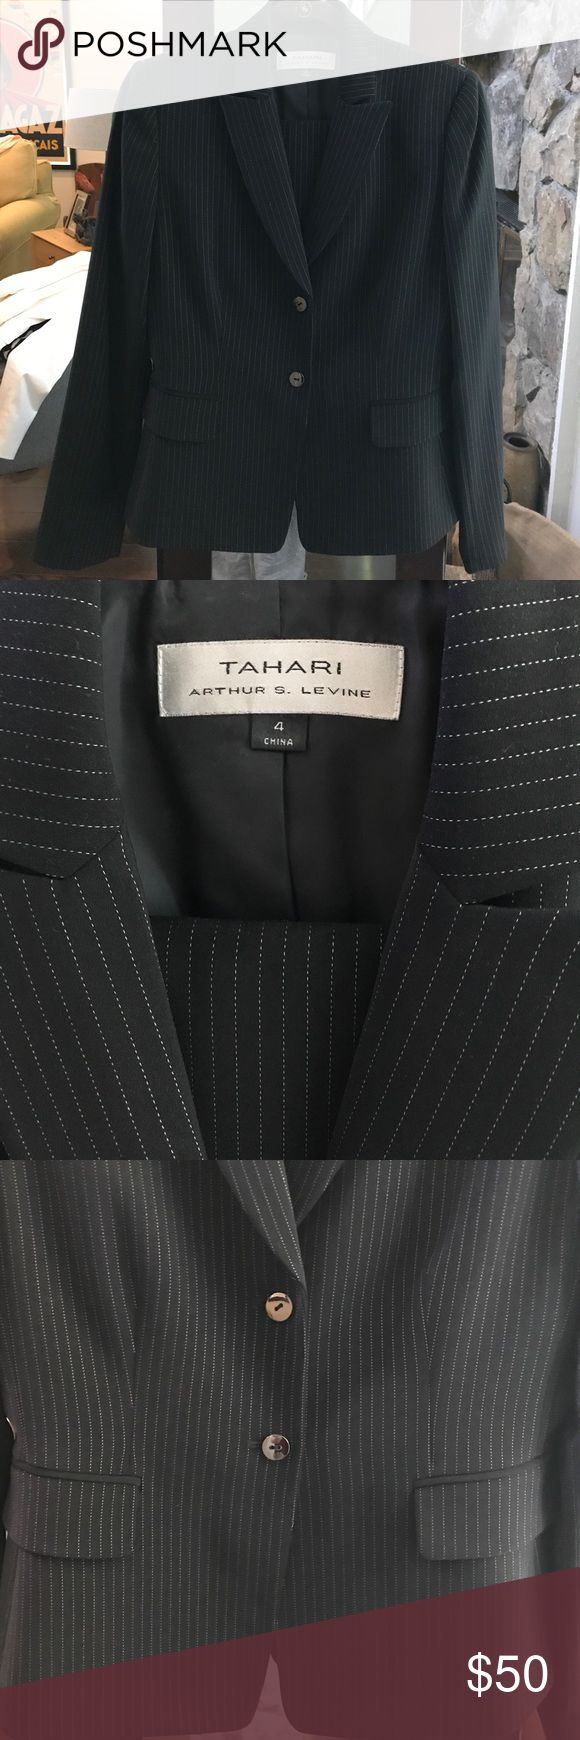 Tahari 2 Piece Black Pinstripe Suit & Skirt Set Tahari 2 Piece Black Pinstripe Suit & Skirt Set. Worn 3 times at most. Great Condition and dry cleaned. Size 4 for both jacket and skirt. Skirt zipper is in back. Tahari Jackets & Coats Blazers